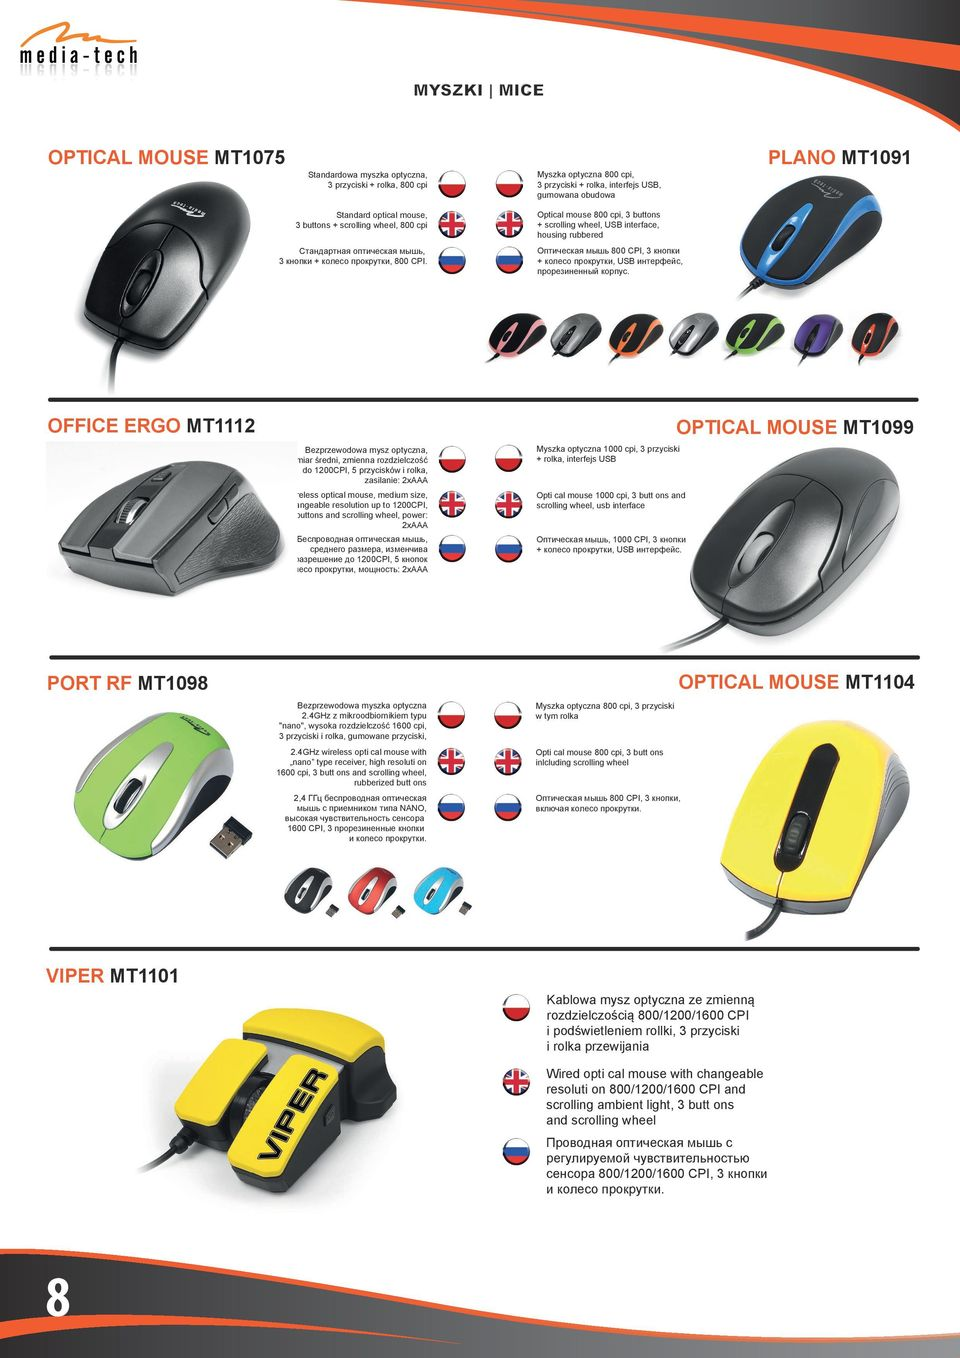 Optical mouse 800 cpi, 3 buttons + scrolling wheel, USB interface, housing rubbered Оптическая мышь 800 CPI, 3 кнопки + колесо прокрутки, USB интерфейс, прорезиненный корпус.